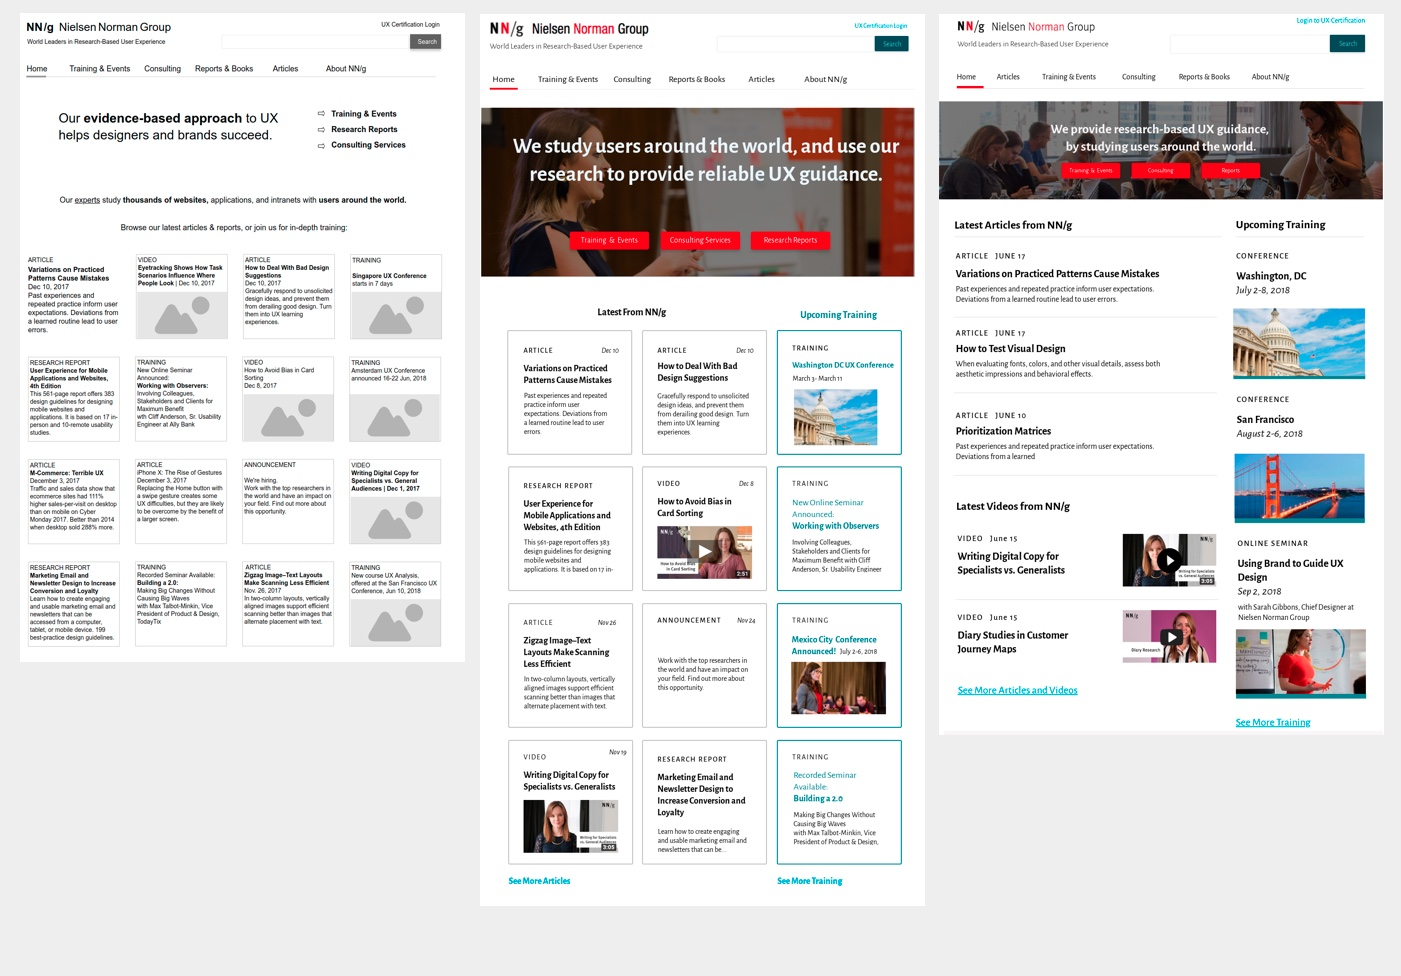 Case Study: Iterative Design and Prototype Testing of the NN/g Homepage